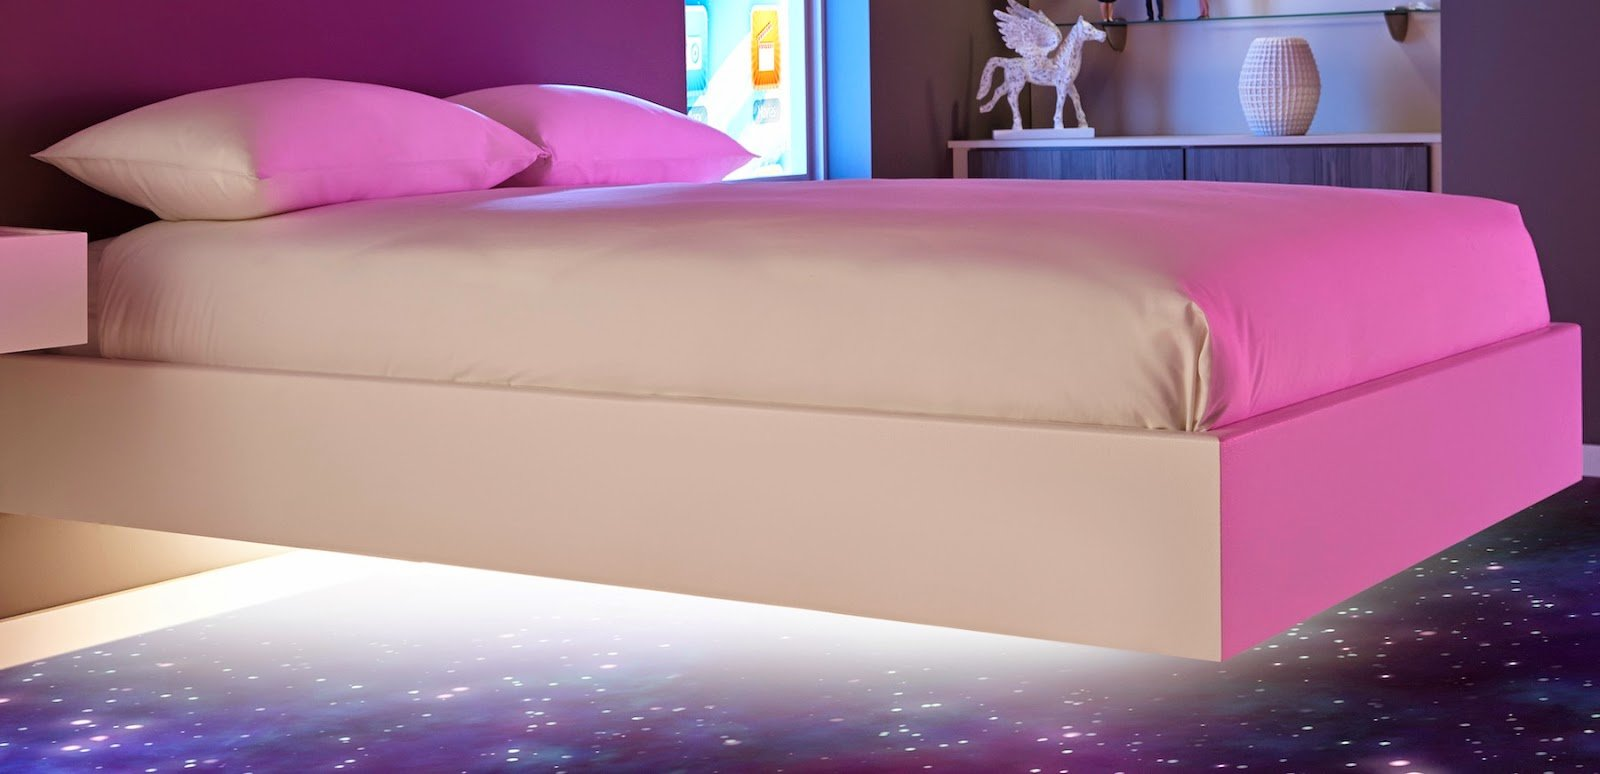 Best The Bedroom Of The Future And Win Gadgets The Diary Of A With Pictures